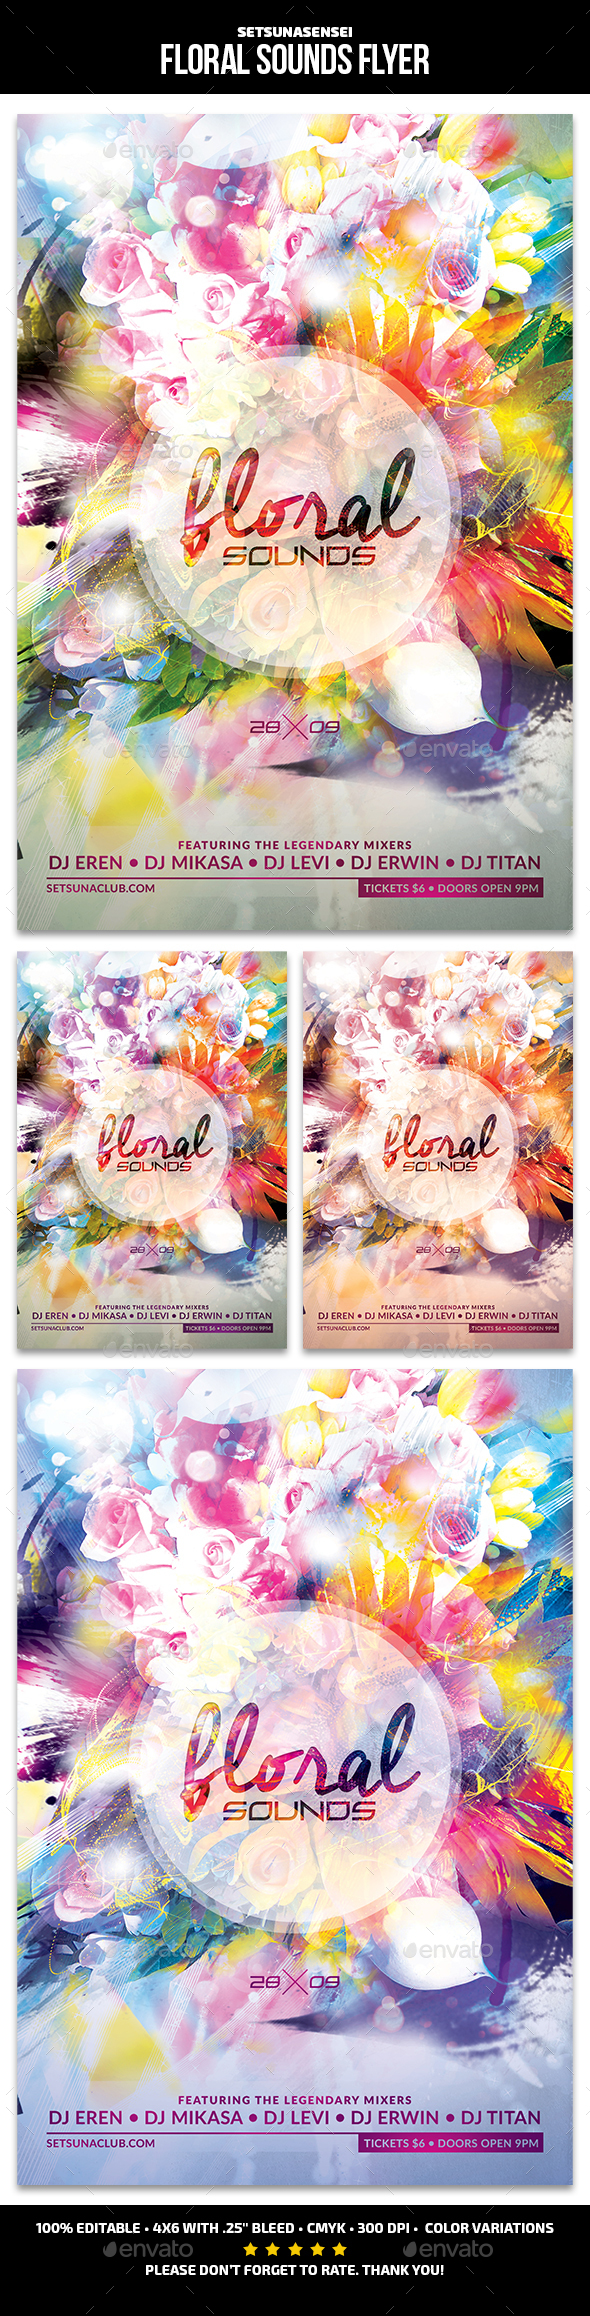 Floral Sounds Flyer - Clubs & Parties Events